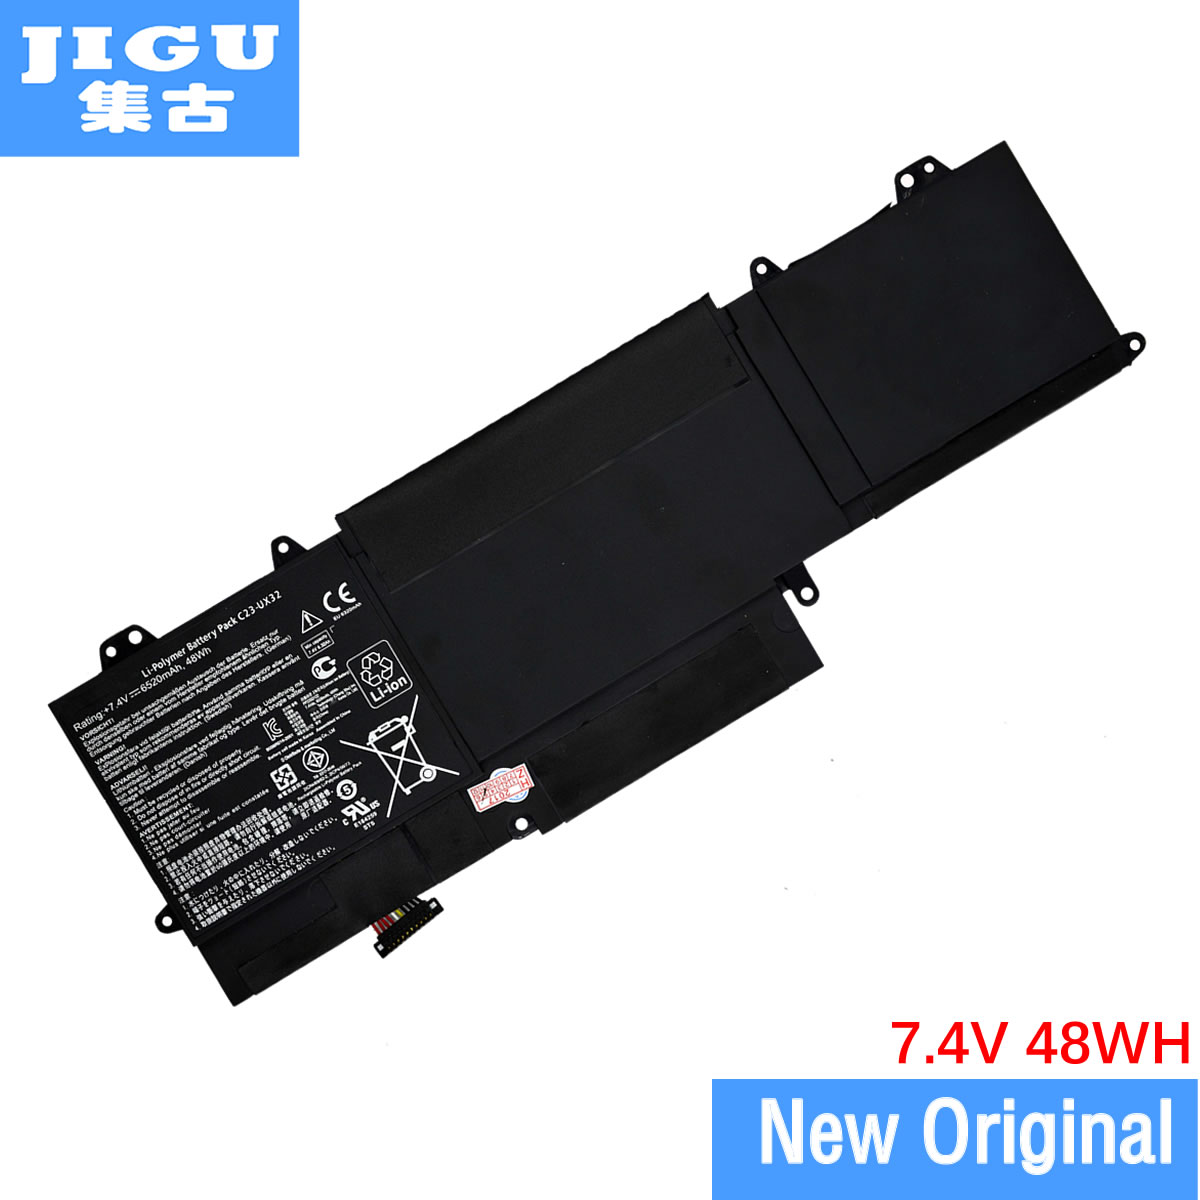 JIGU C23-UX32 Original Laptop Battery For Asus For VivoBook U38N U38K U38DT For Zenbook UX32 UX32VD UX32LA 7.4V 48WH все цены